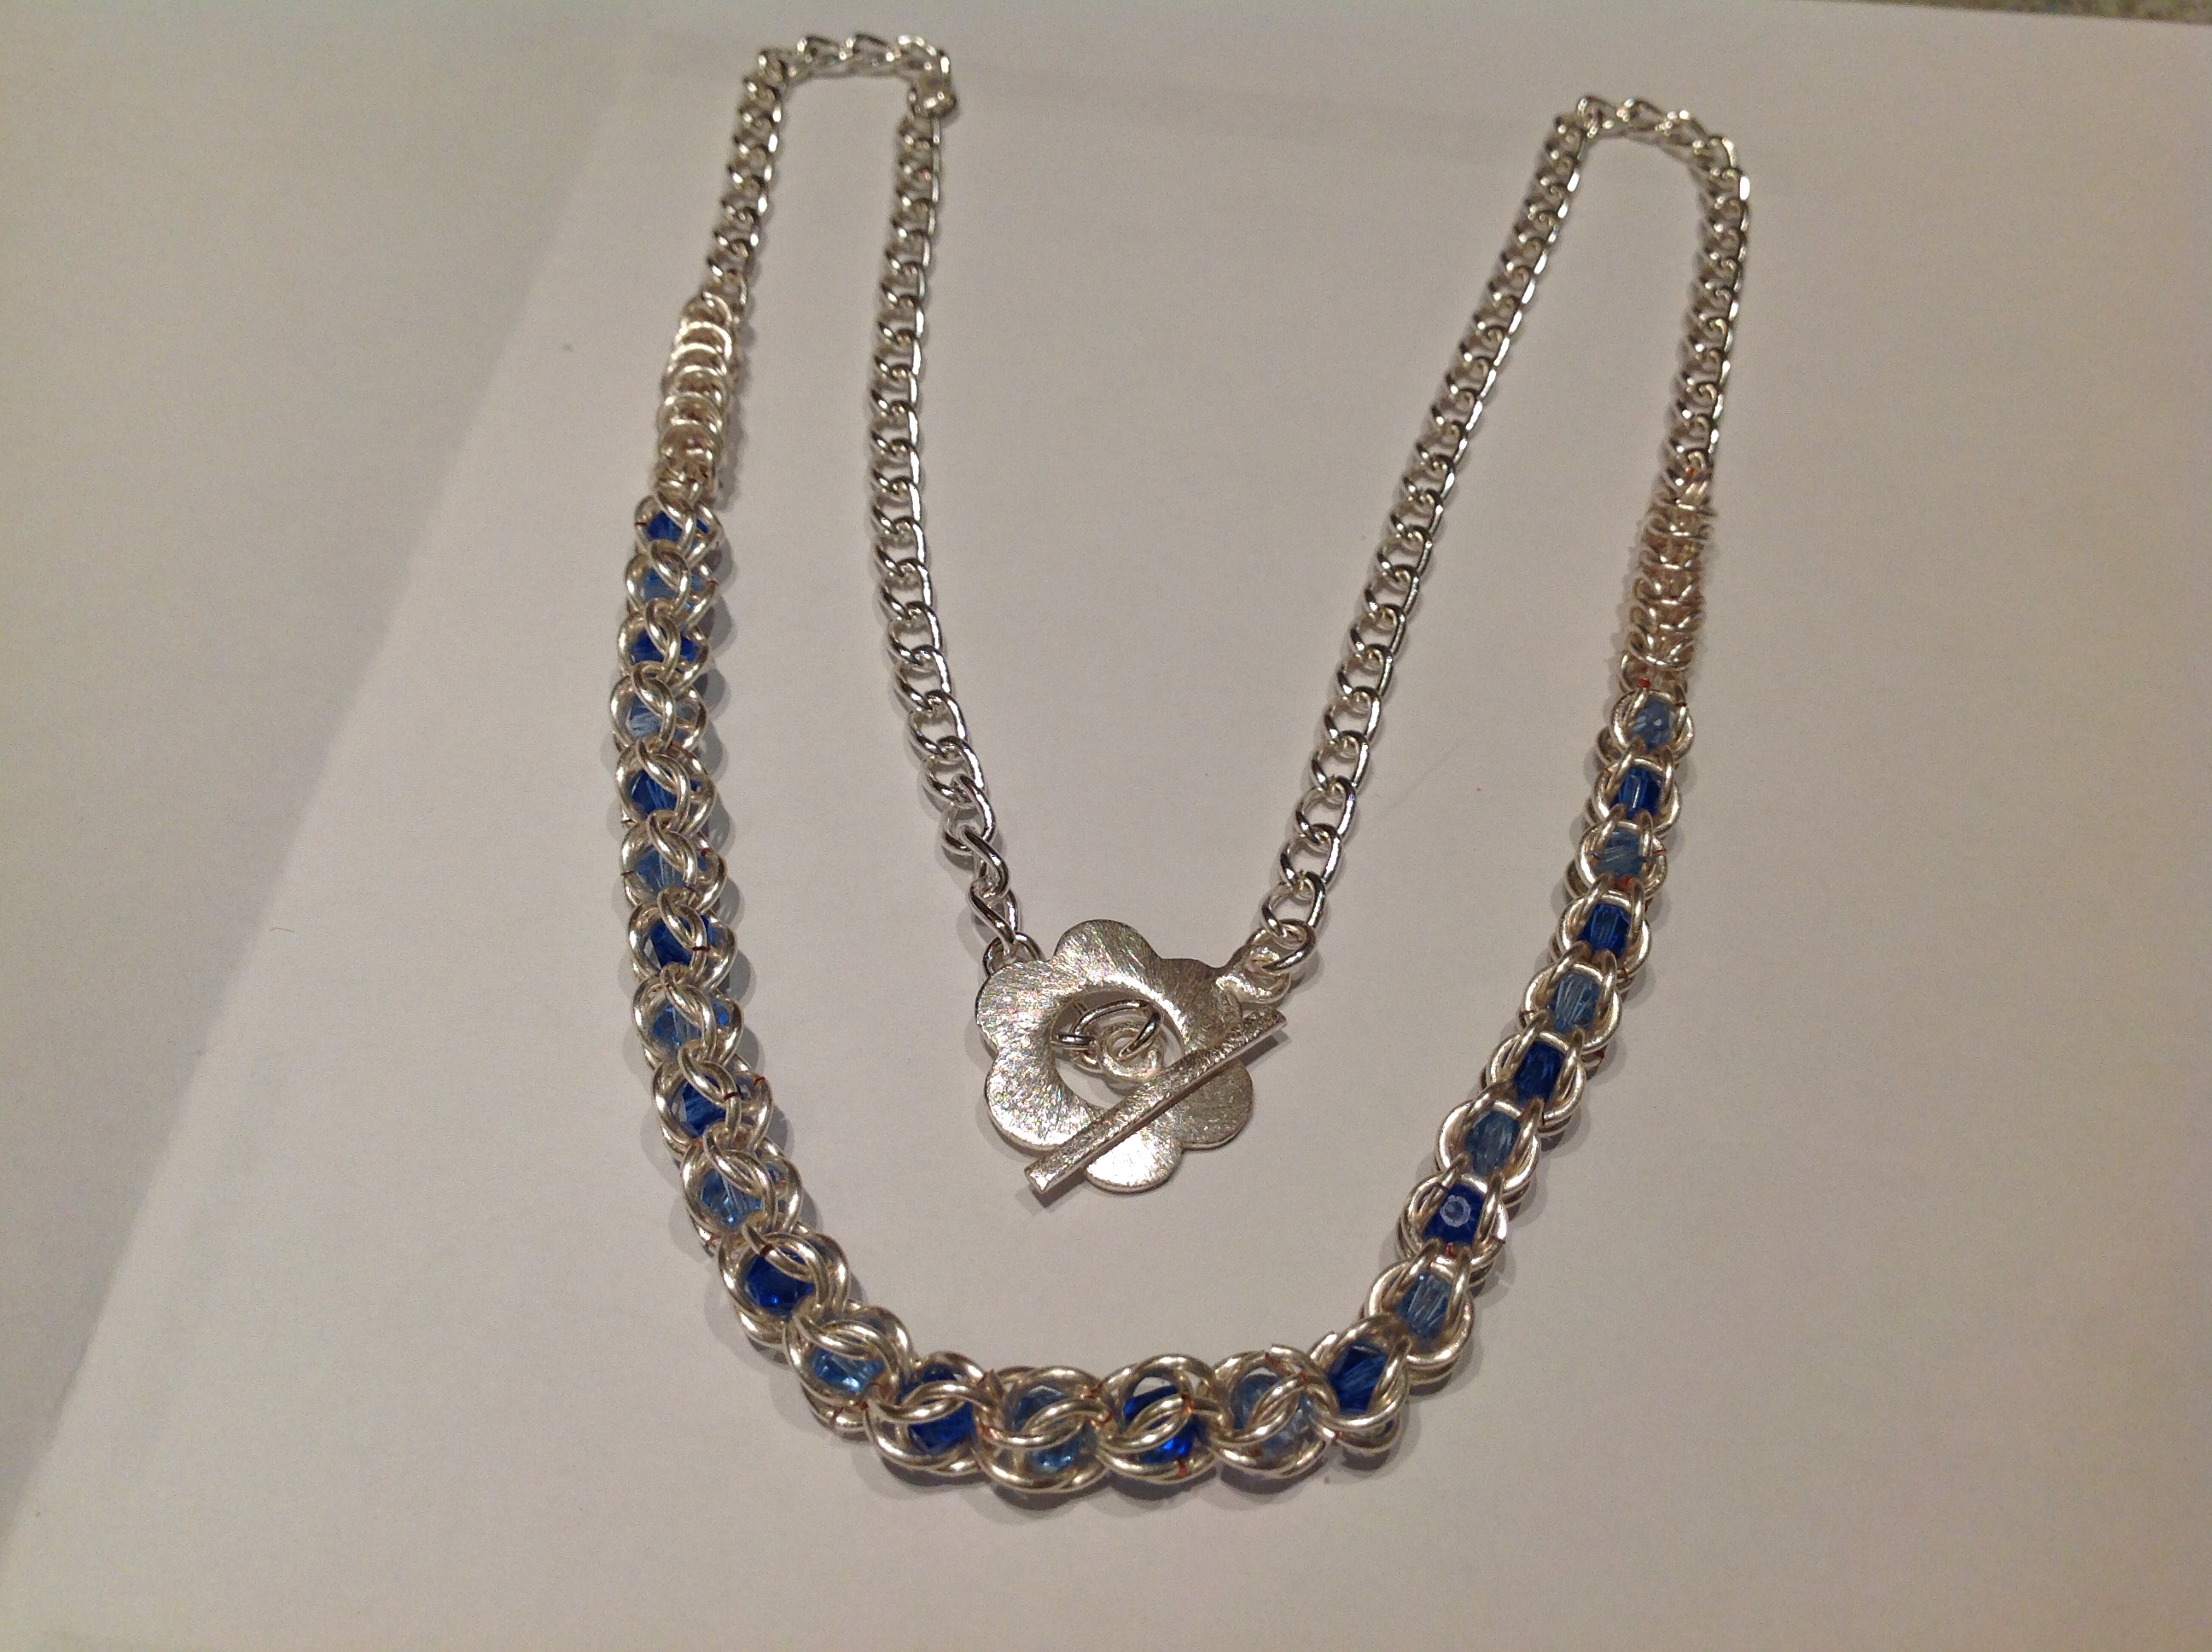 Chainmaille Necklace for a Friend